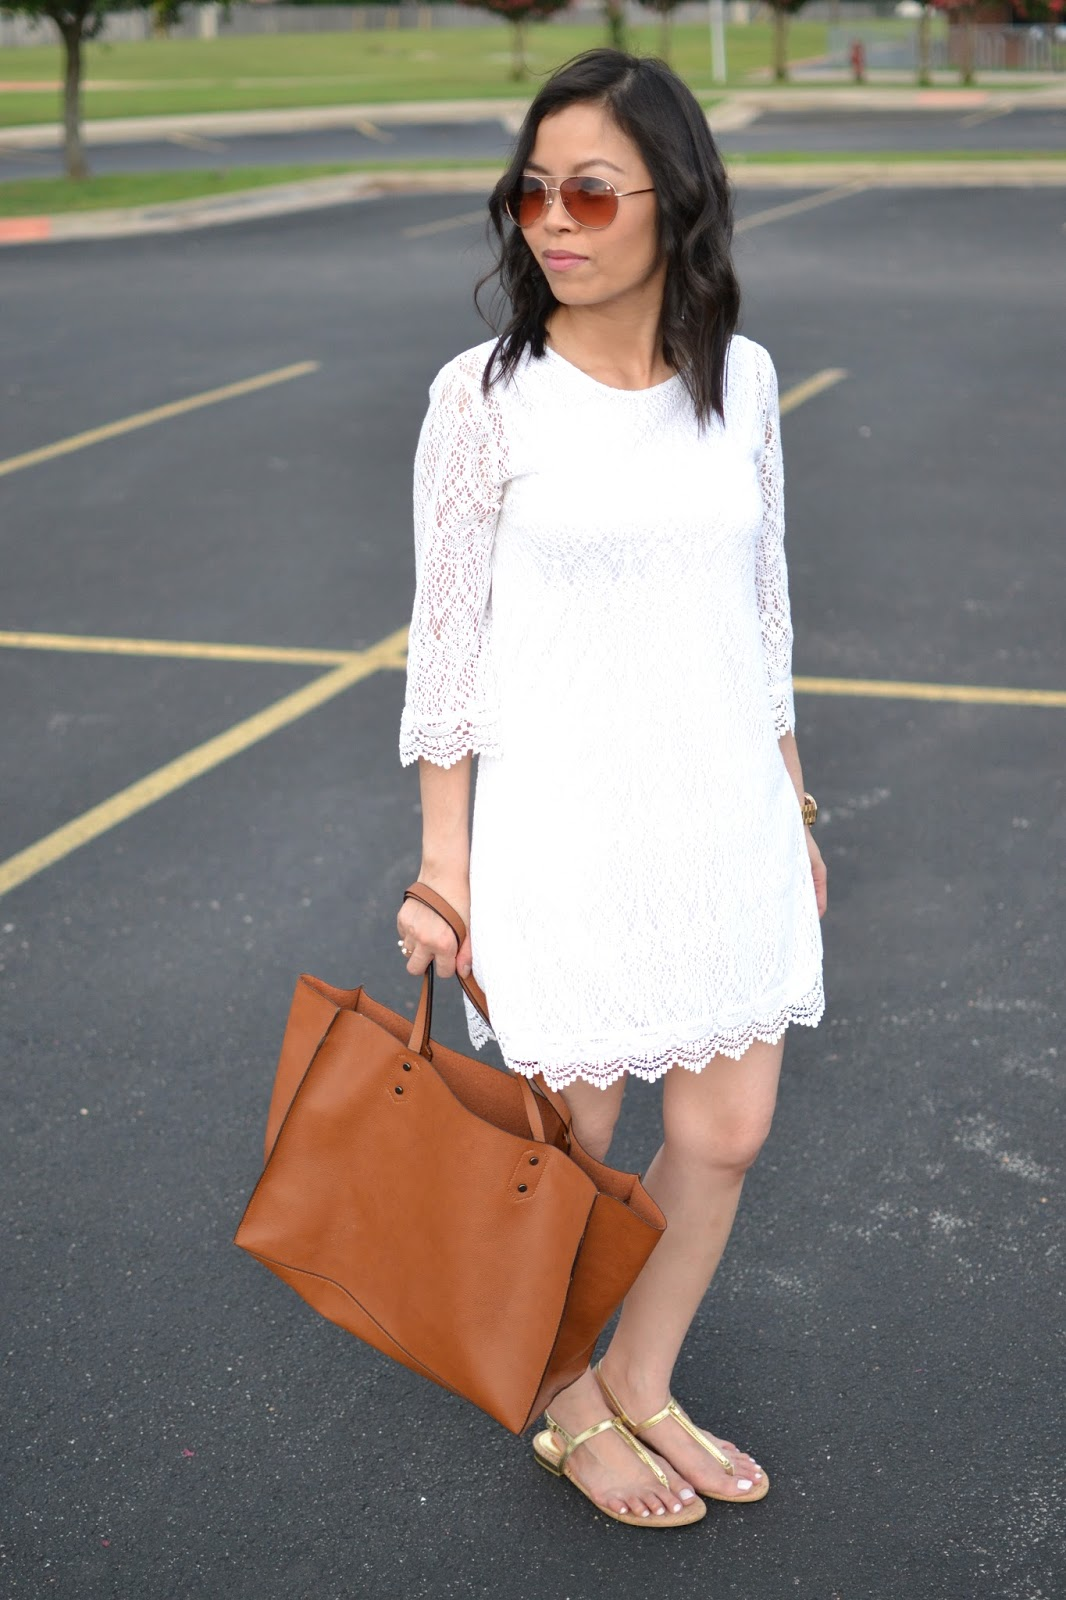 Style and Cappuccino : Summer Lace: White Lace Dress &amp Gold Sandals